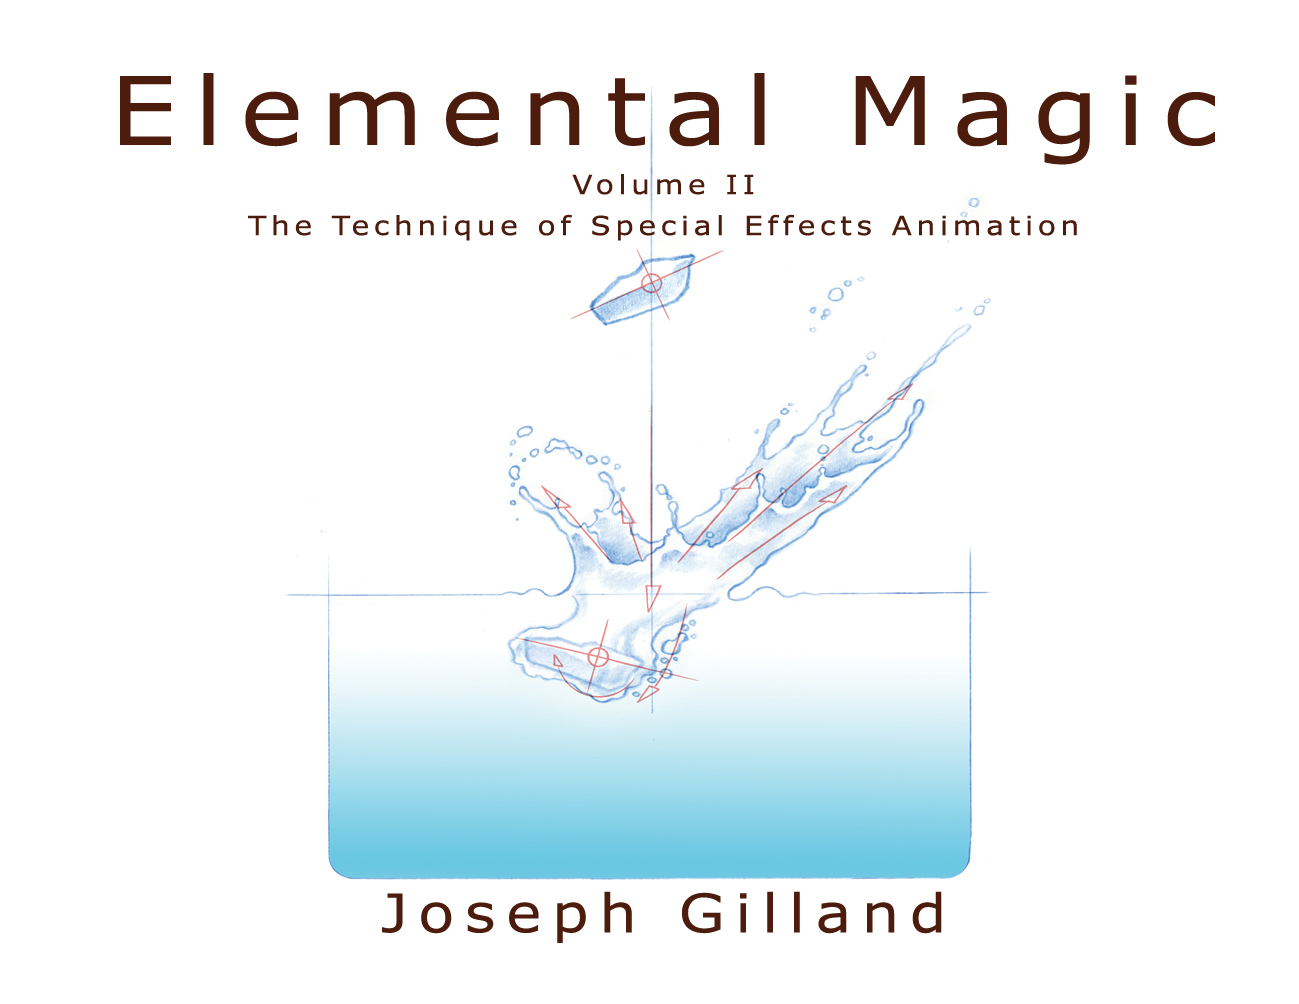 Elemental Magic Volume Ll, The Technique Of Special Effects Animation